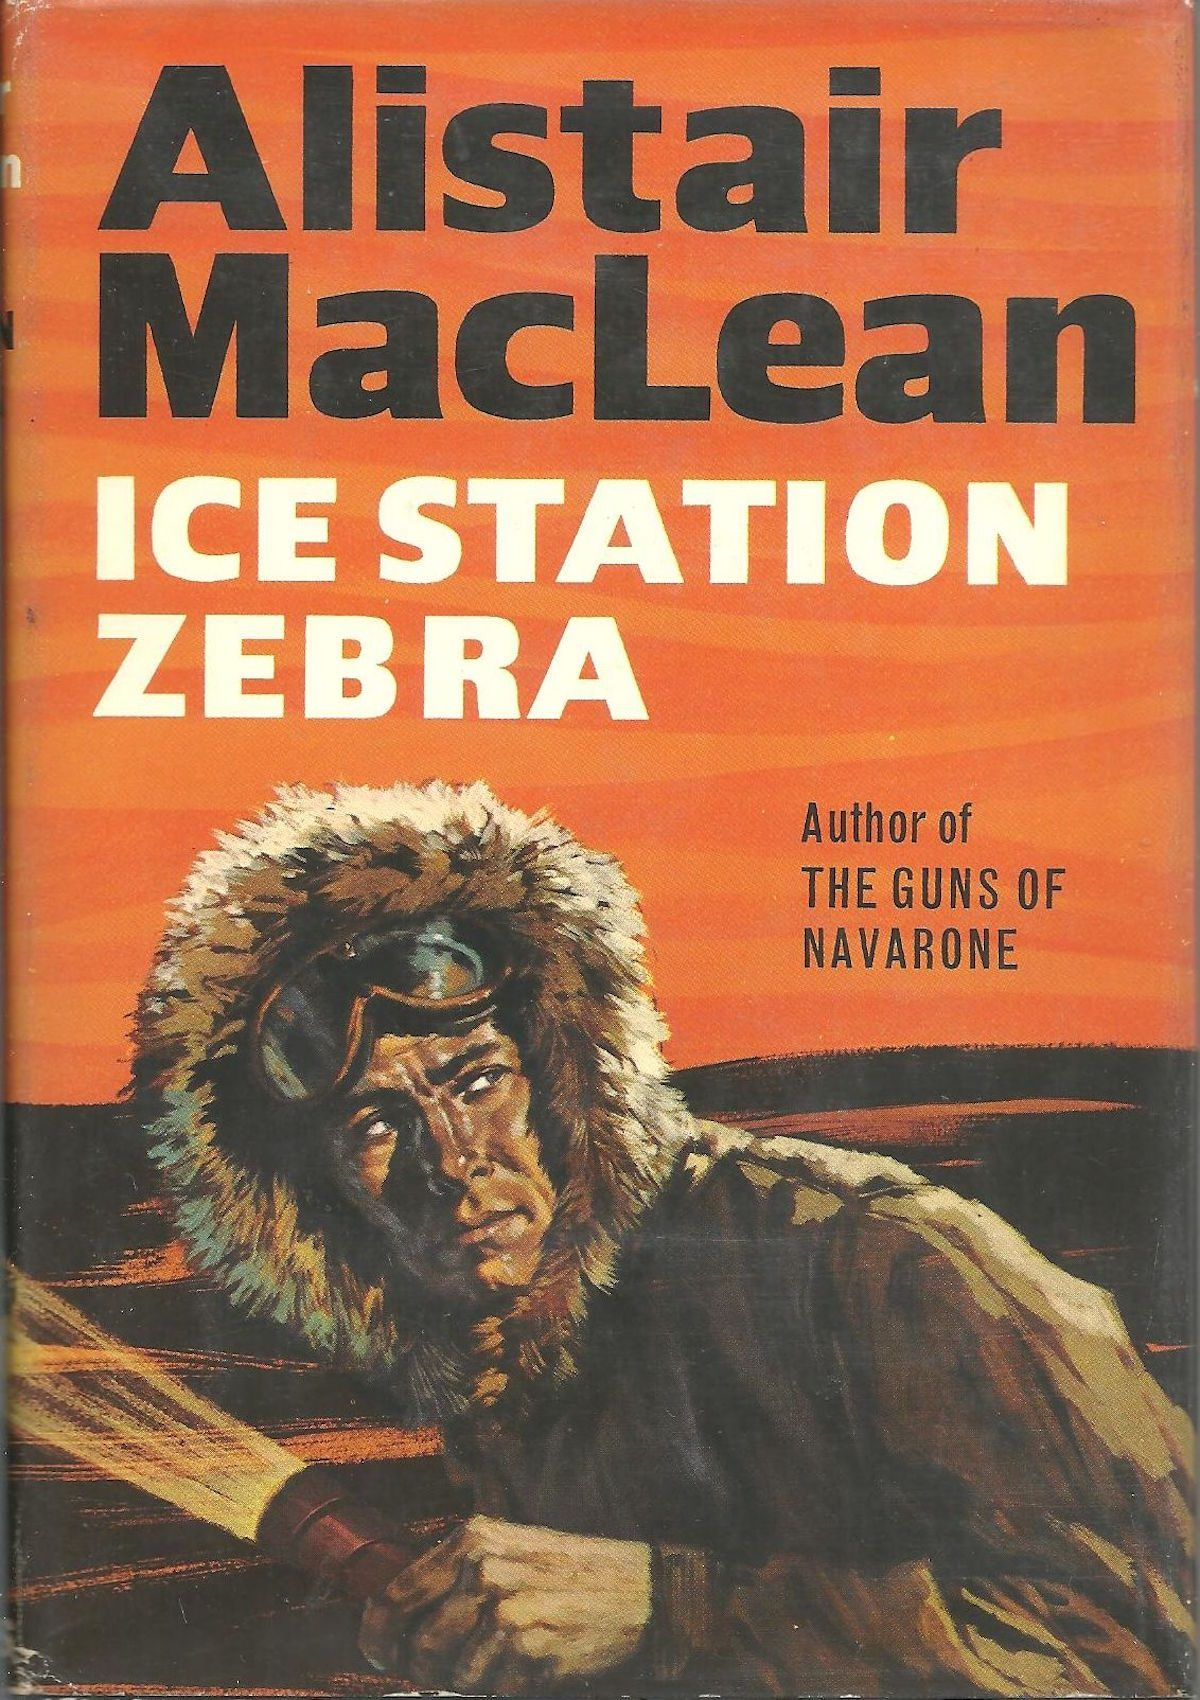 Alistair MacLean, Ice Station Zebra, book